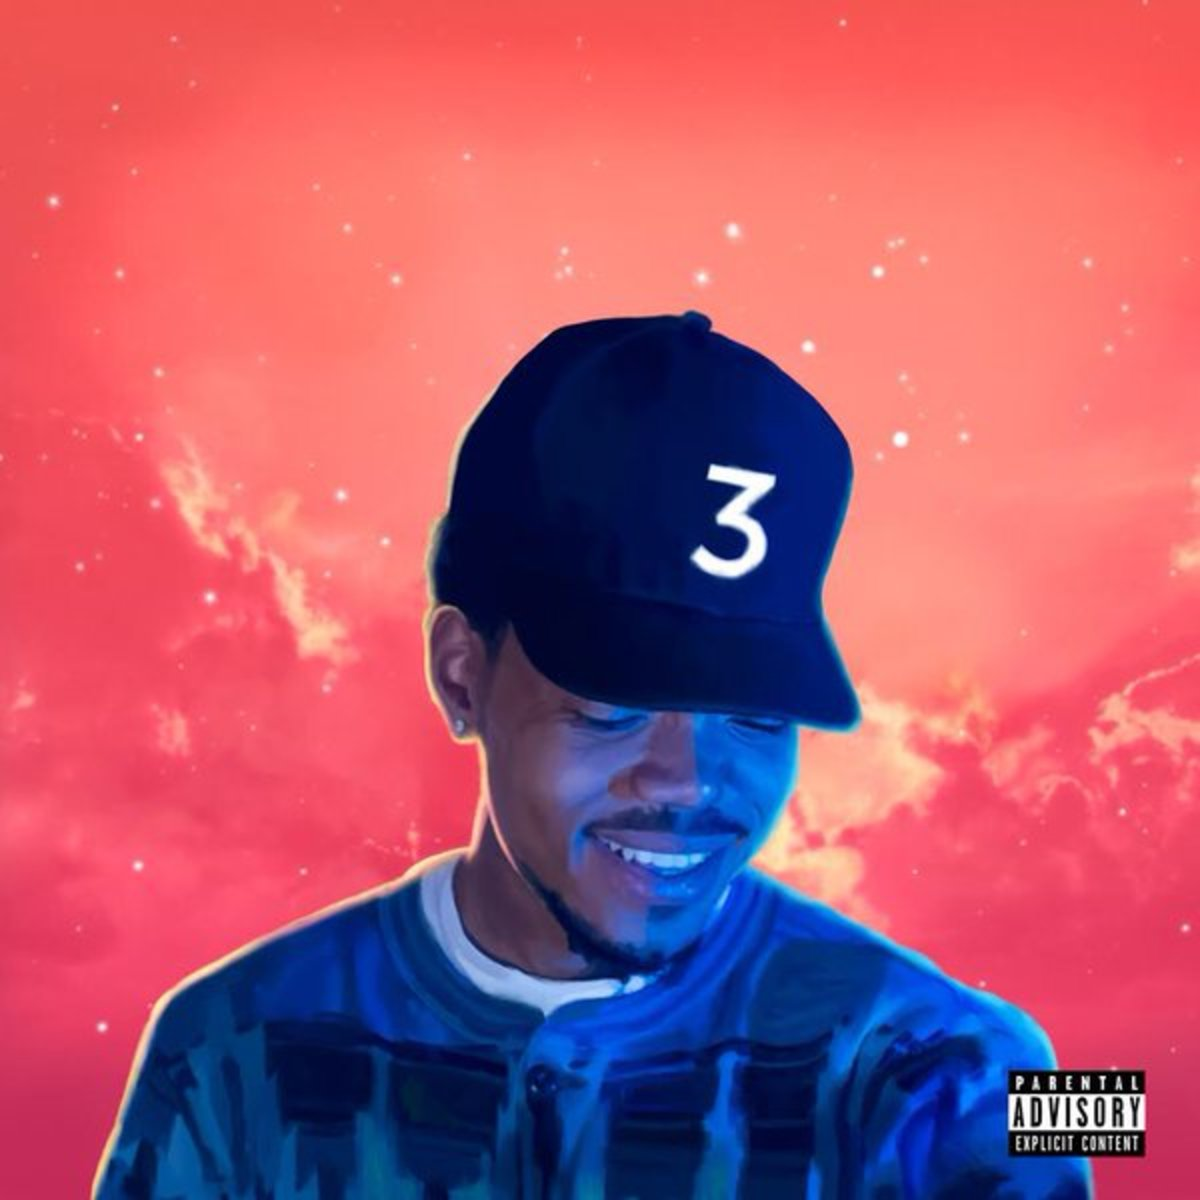 Chance The Rapper S Album Art Uncovers The Man Behind The